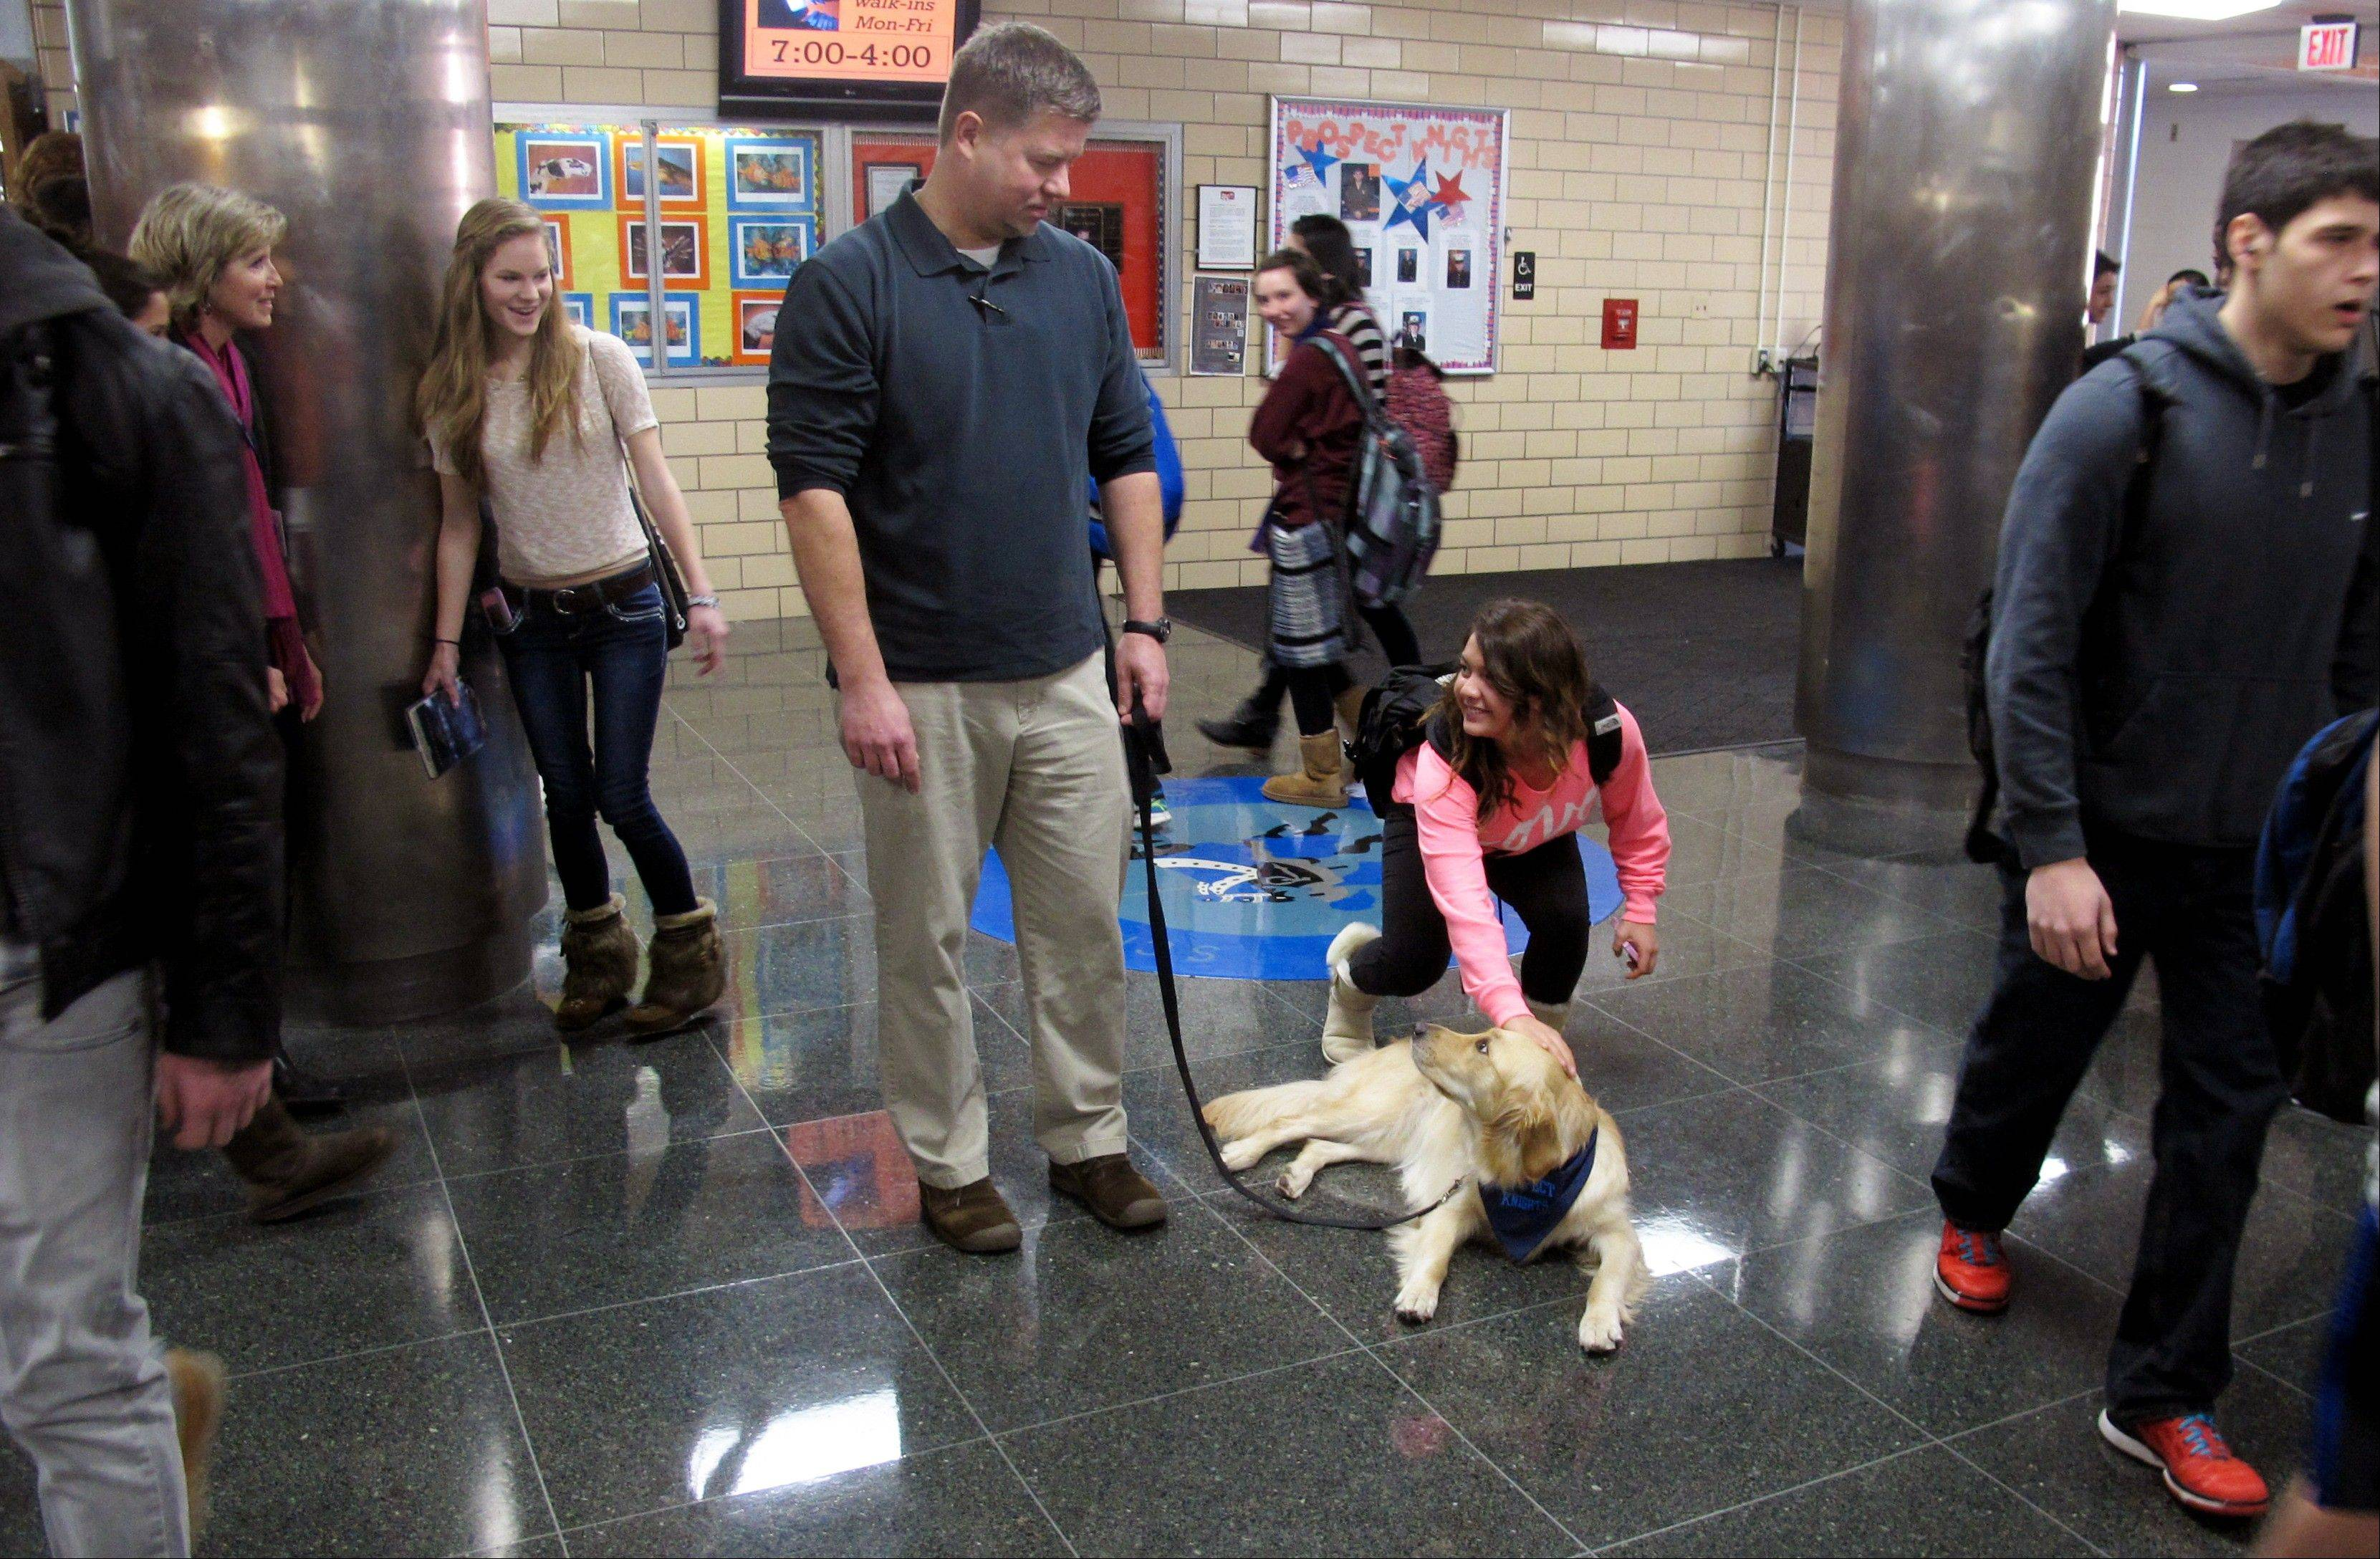 Douglas Berg, a social worker at Prospect High School, watches as a student pets Junie.